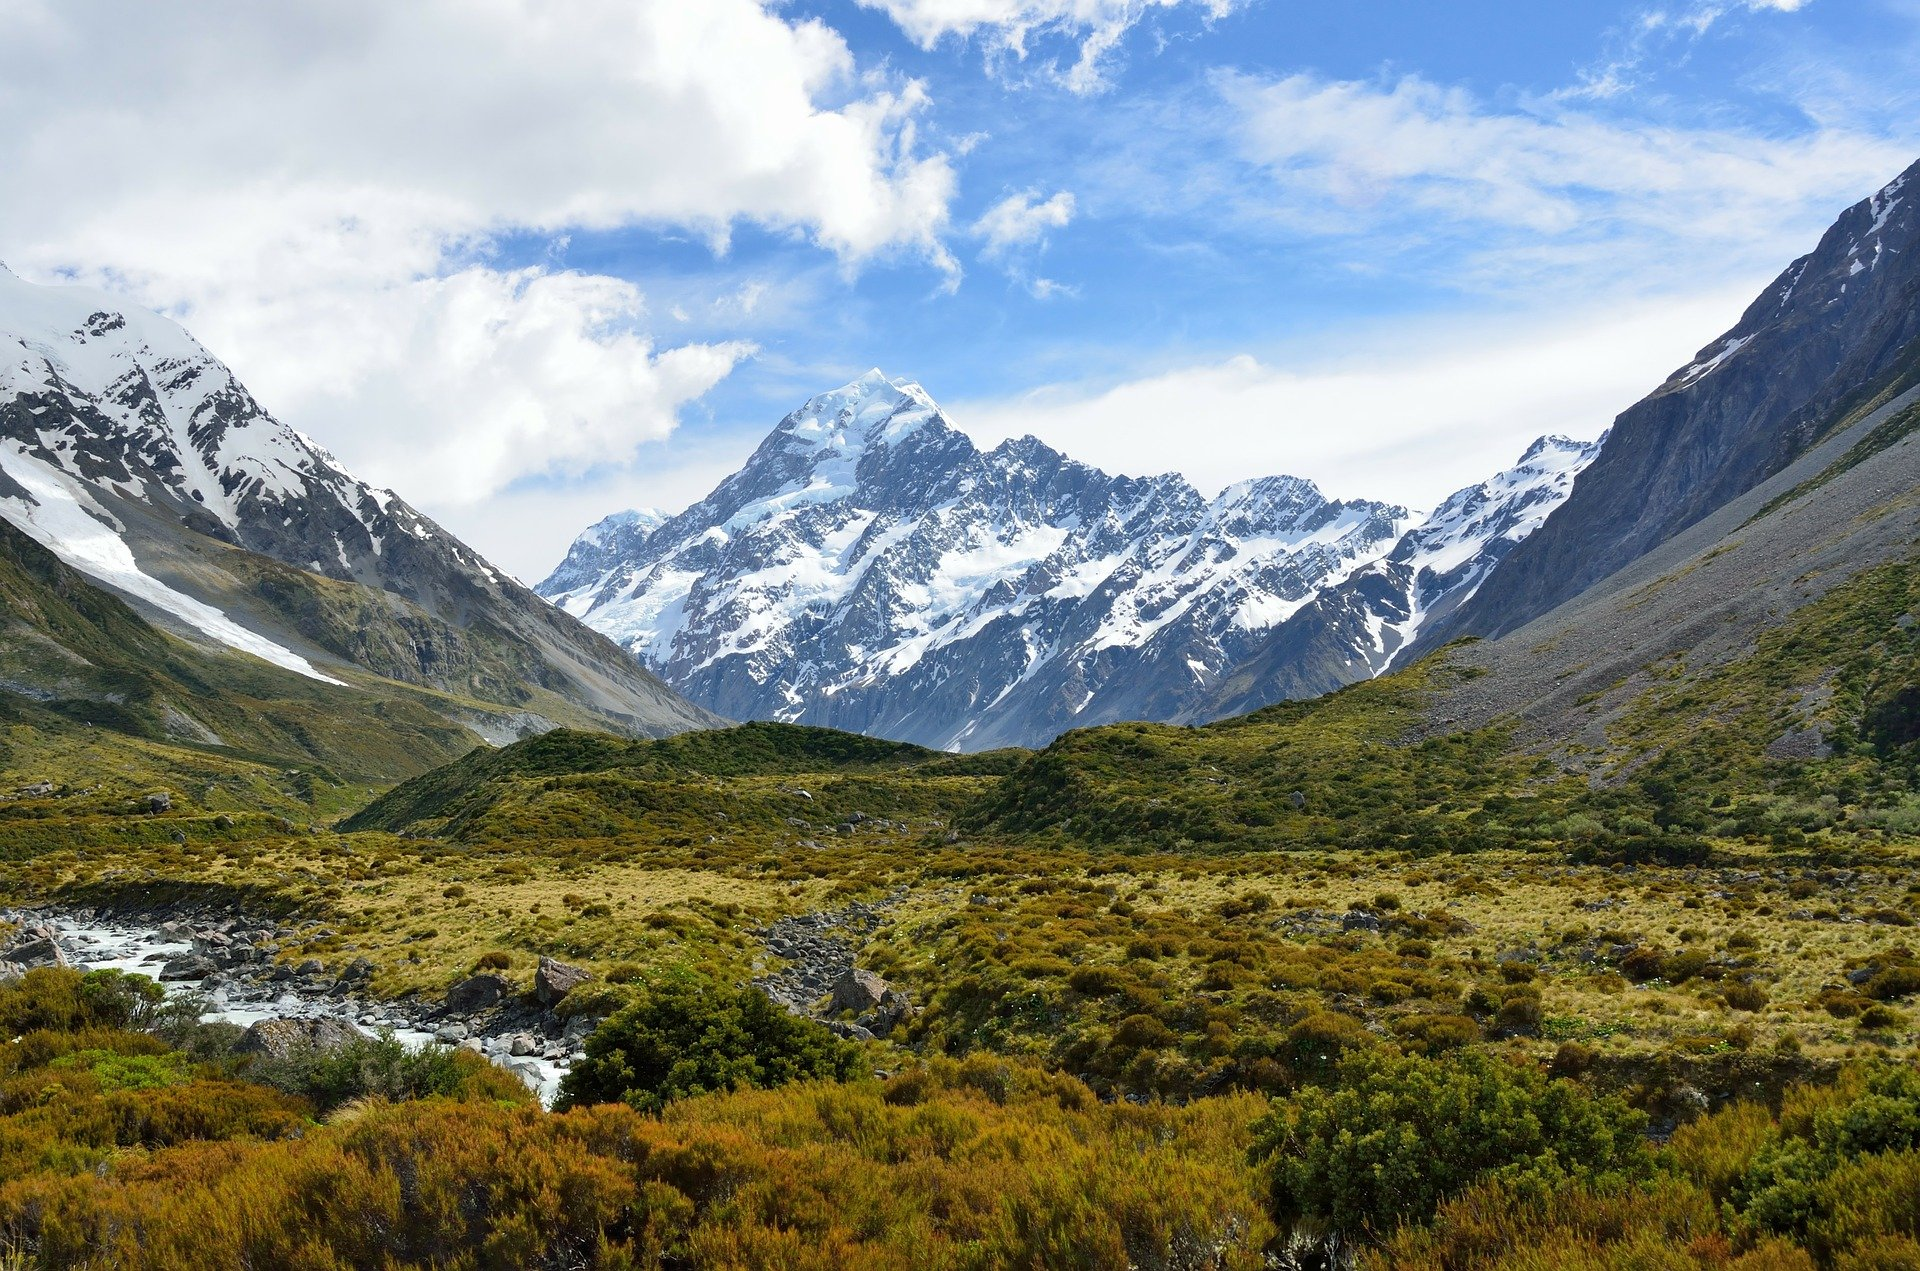 15-Day Discover New Zealand - New Zealand Itinerary